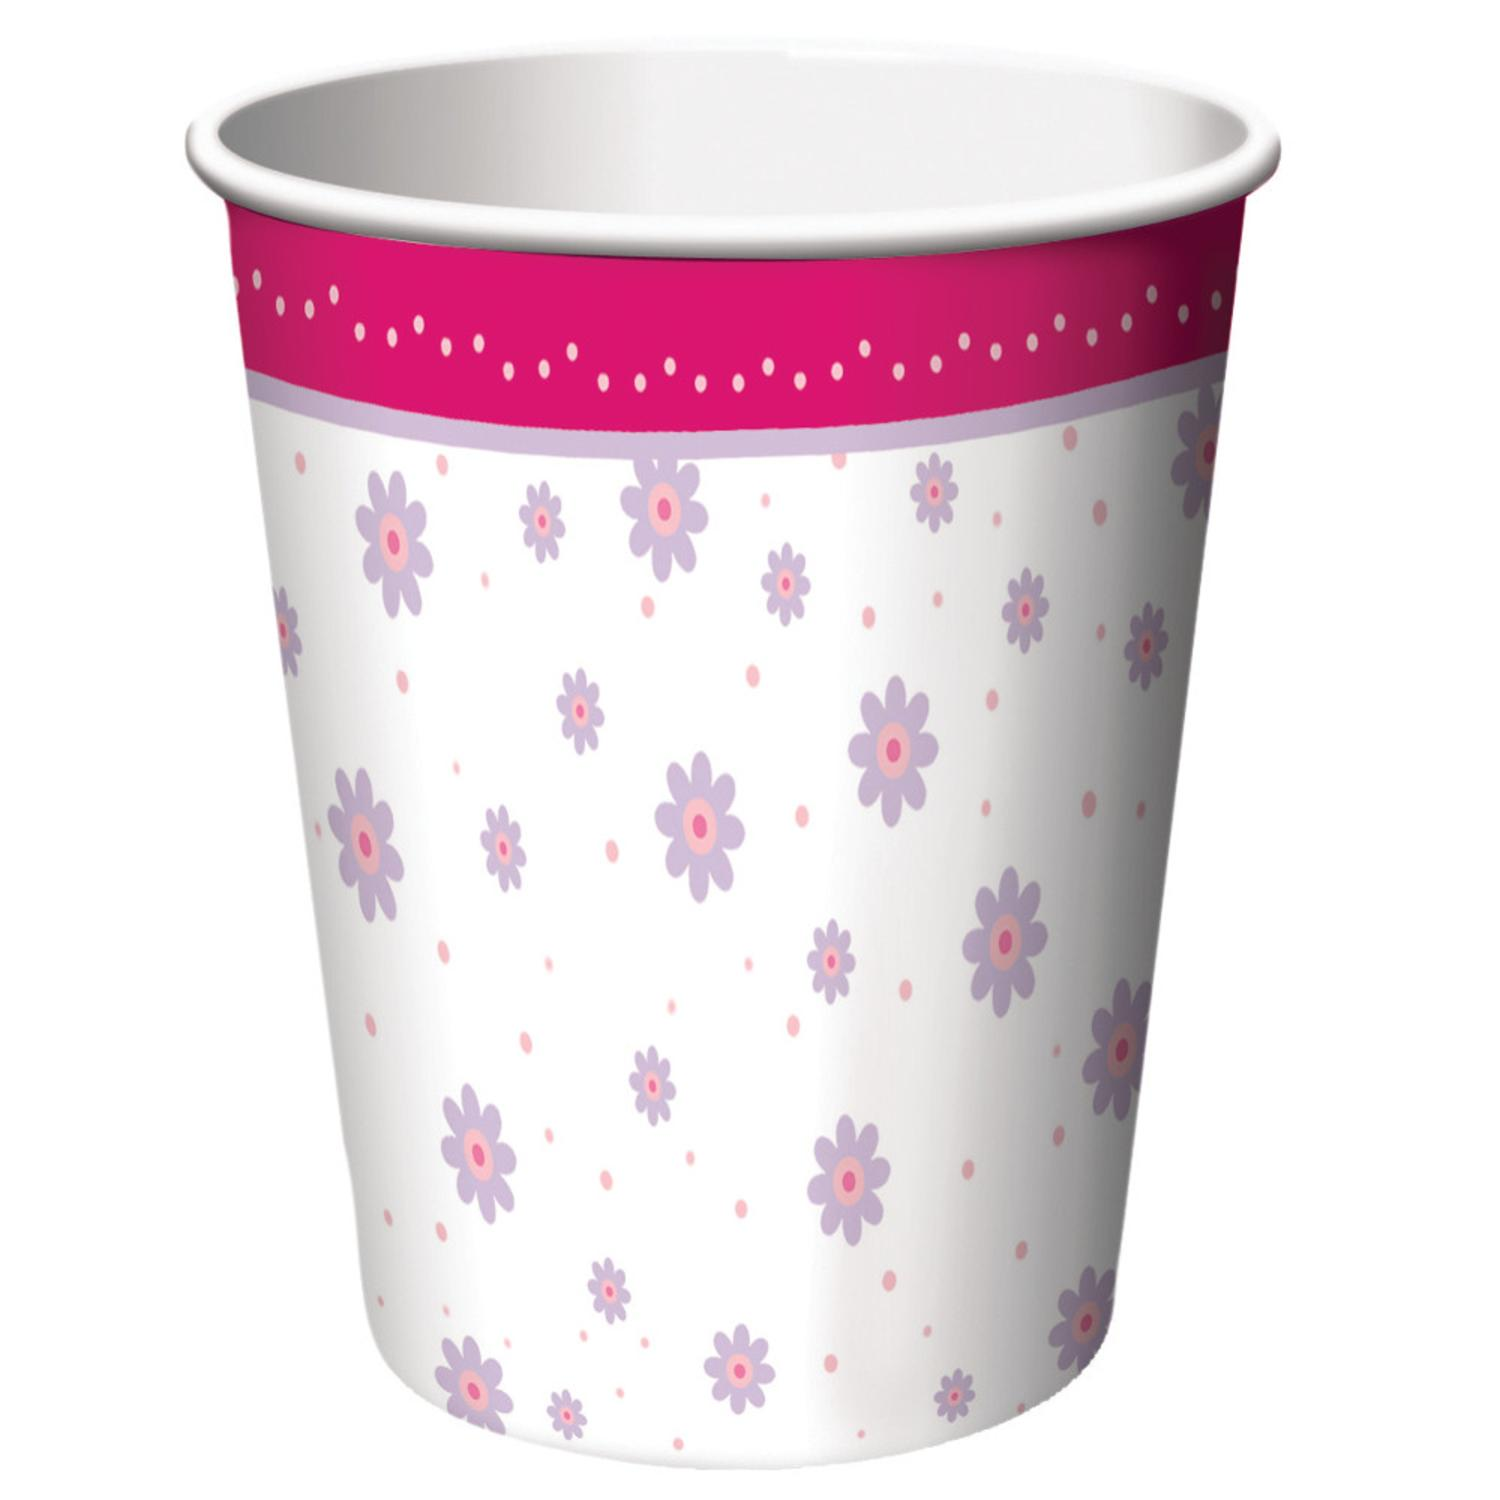 Club Pack of 96 Tutu Much Fun Disposable Paper Hot and Cold Drinking Party Cups 9oz.